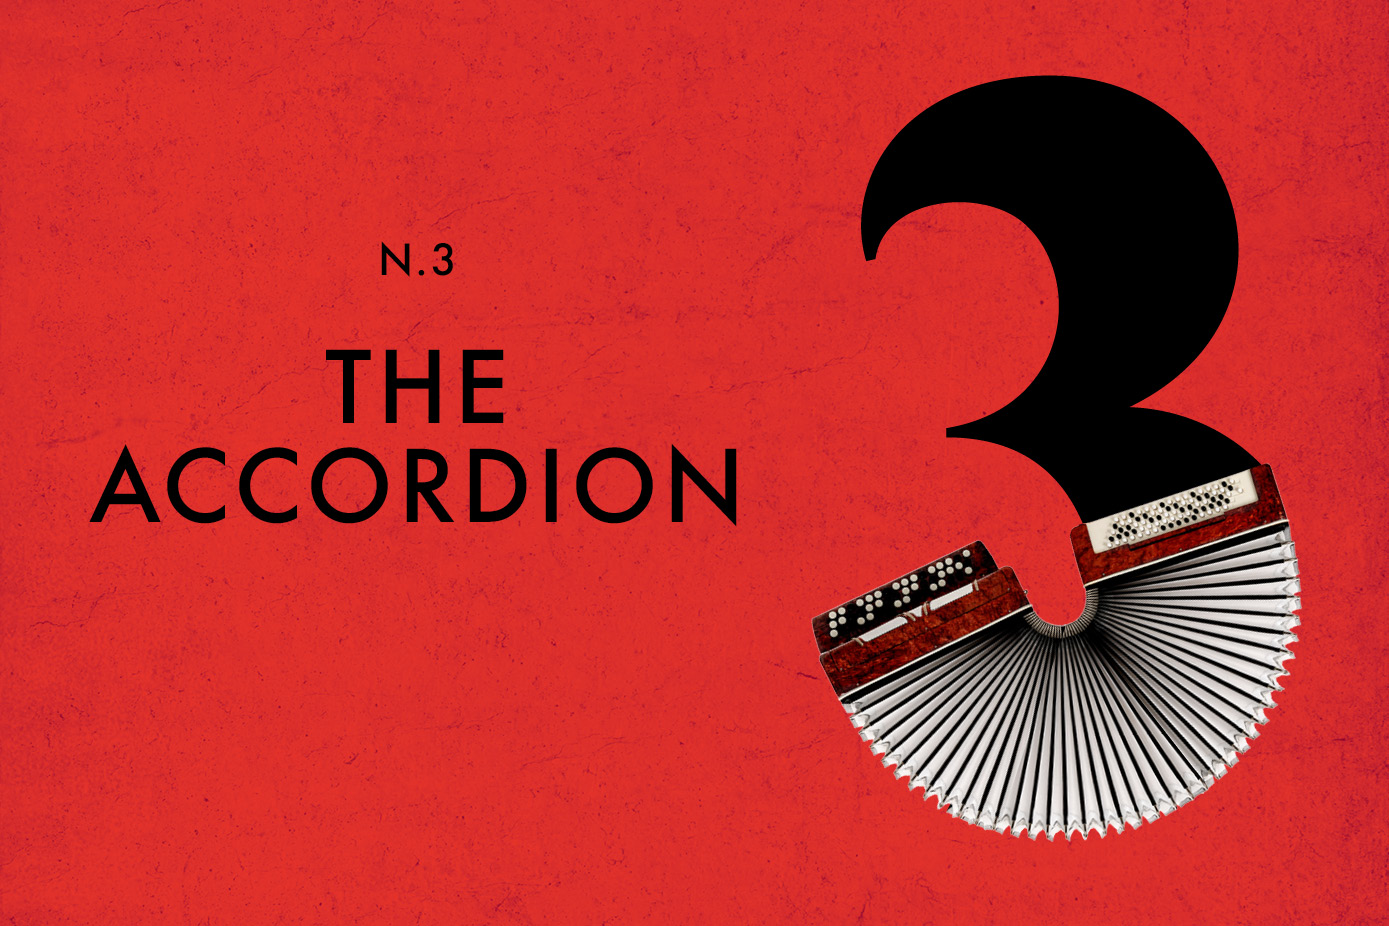 Manchester Collective presents THE ACCORDION